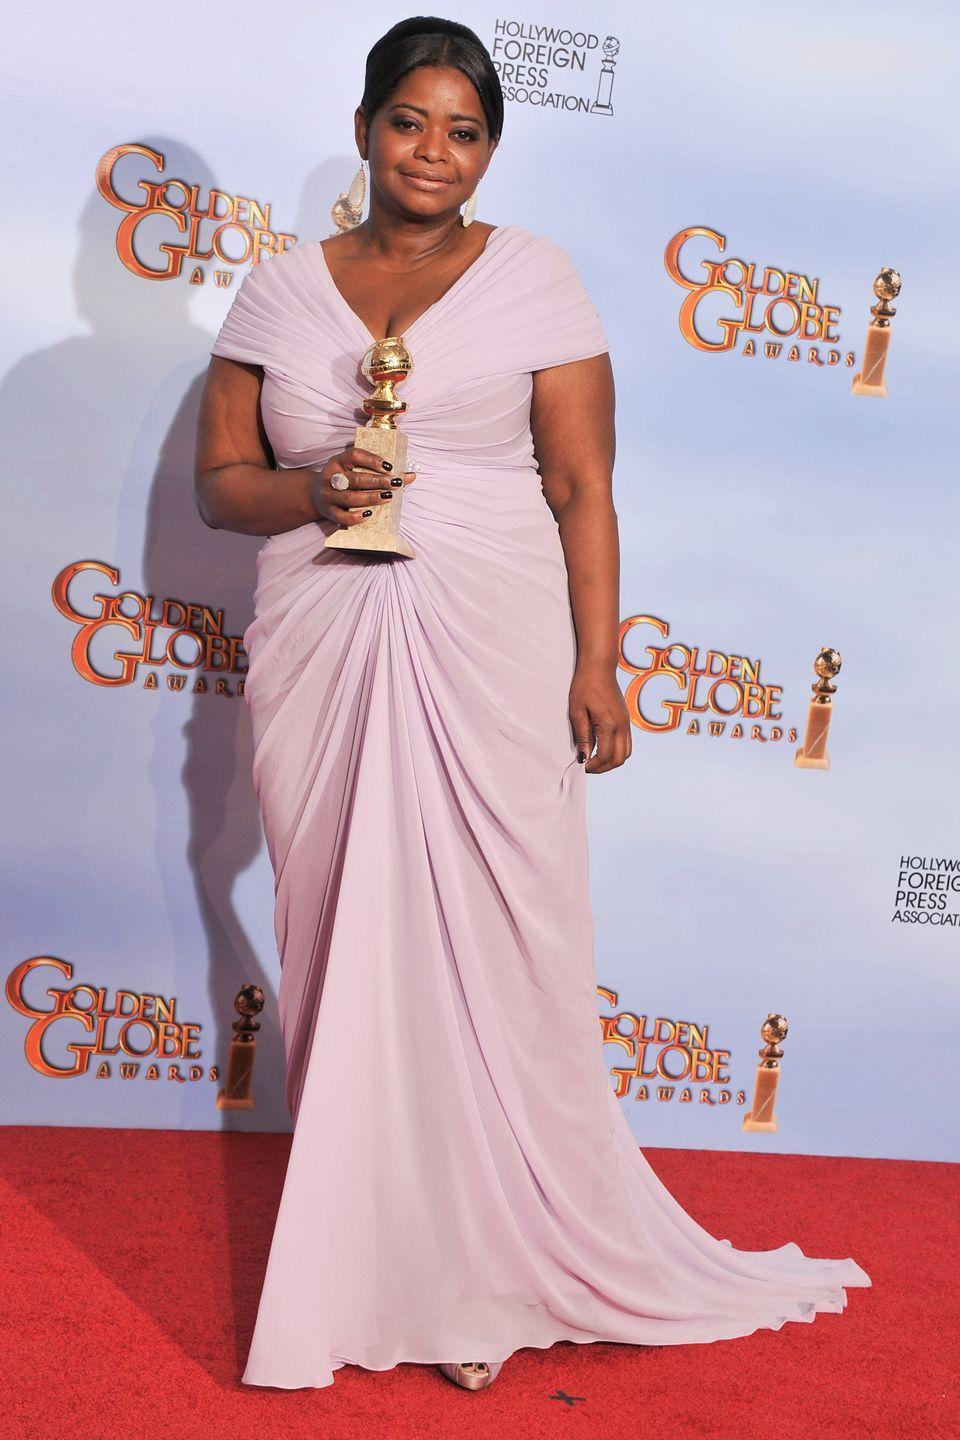 """<p>Oscar-winner Spencer spoke out about the difficulty of finding a designer to dress her for the Golden Globe Awards back in 2012, even though she was a nominee (and eventual winner) on the night.</p><p>""""I'm just a short, chubby girl<span class=""""redactor-invisible-space"""">,"""" the actress told reporters at the Palm Springs Festival (via <em><span>People</span></em>). """"It's hard for me to find a dress to wear to something like this. It's a lot of pressure, I'll tell you. No designers are coming to me.""""</span></p><p><span class=""""redactor-invisible-space""""><span class=""""redactor-invisible-space"""">She eventually wore a lilac Tadashi Shoji gown (pictured), and later joked: """"Maybe I should have sworn off peanut butter last year instead of this year<span class=""""redactor-invisible-space"""">."""" </span></span></span>Never. </p>"""